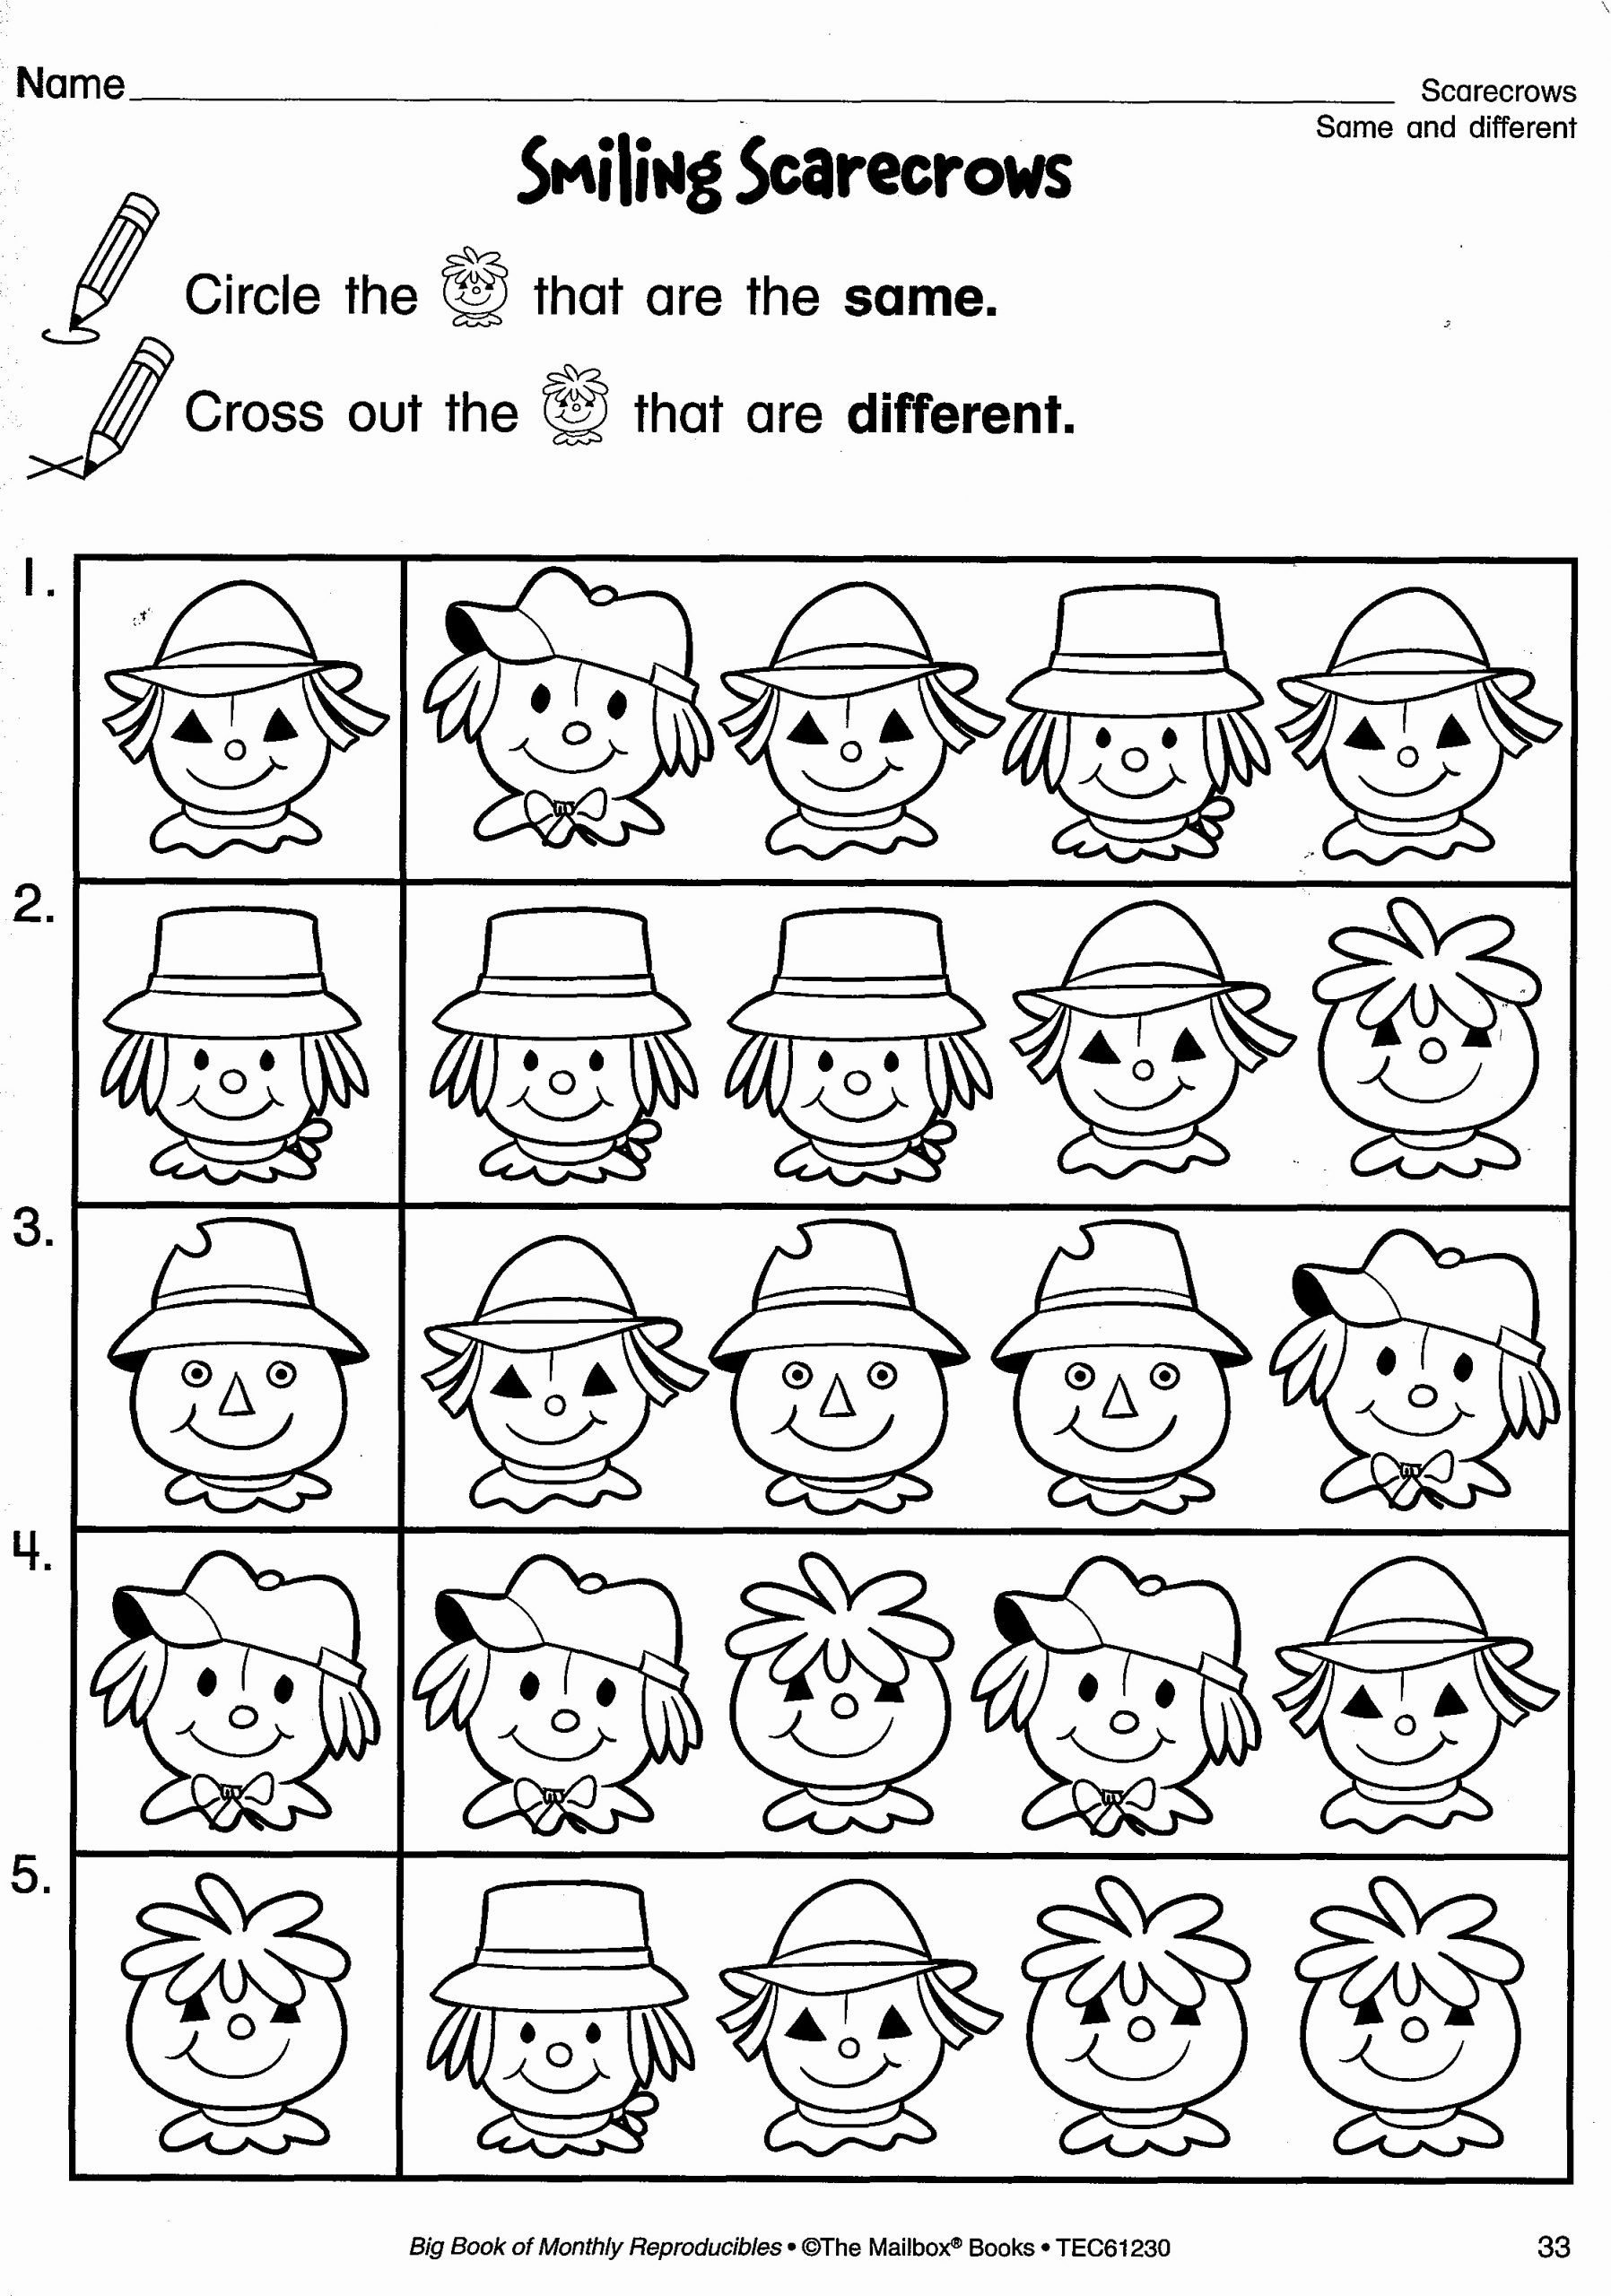 Scarecrow Worksheets for Preschoolers top Fall Reproducible Page Smiling Scarecrows for Practicing